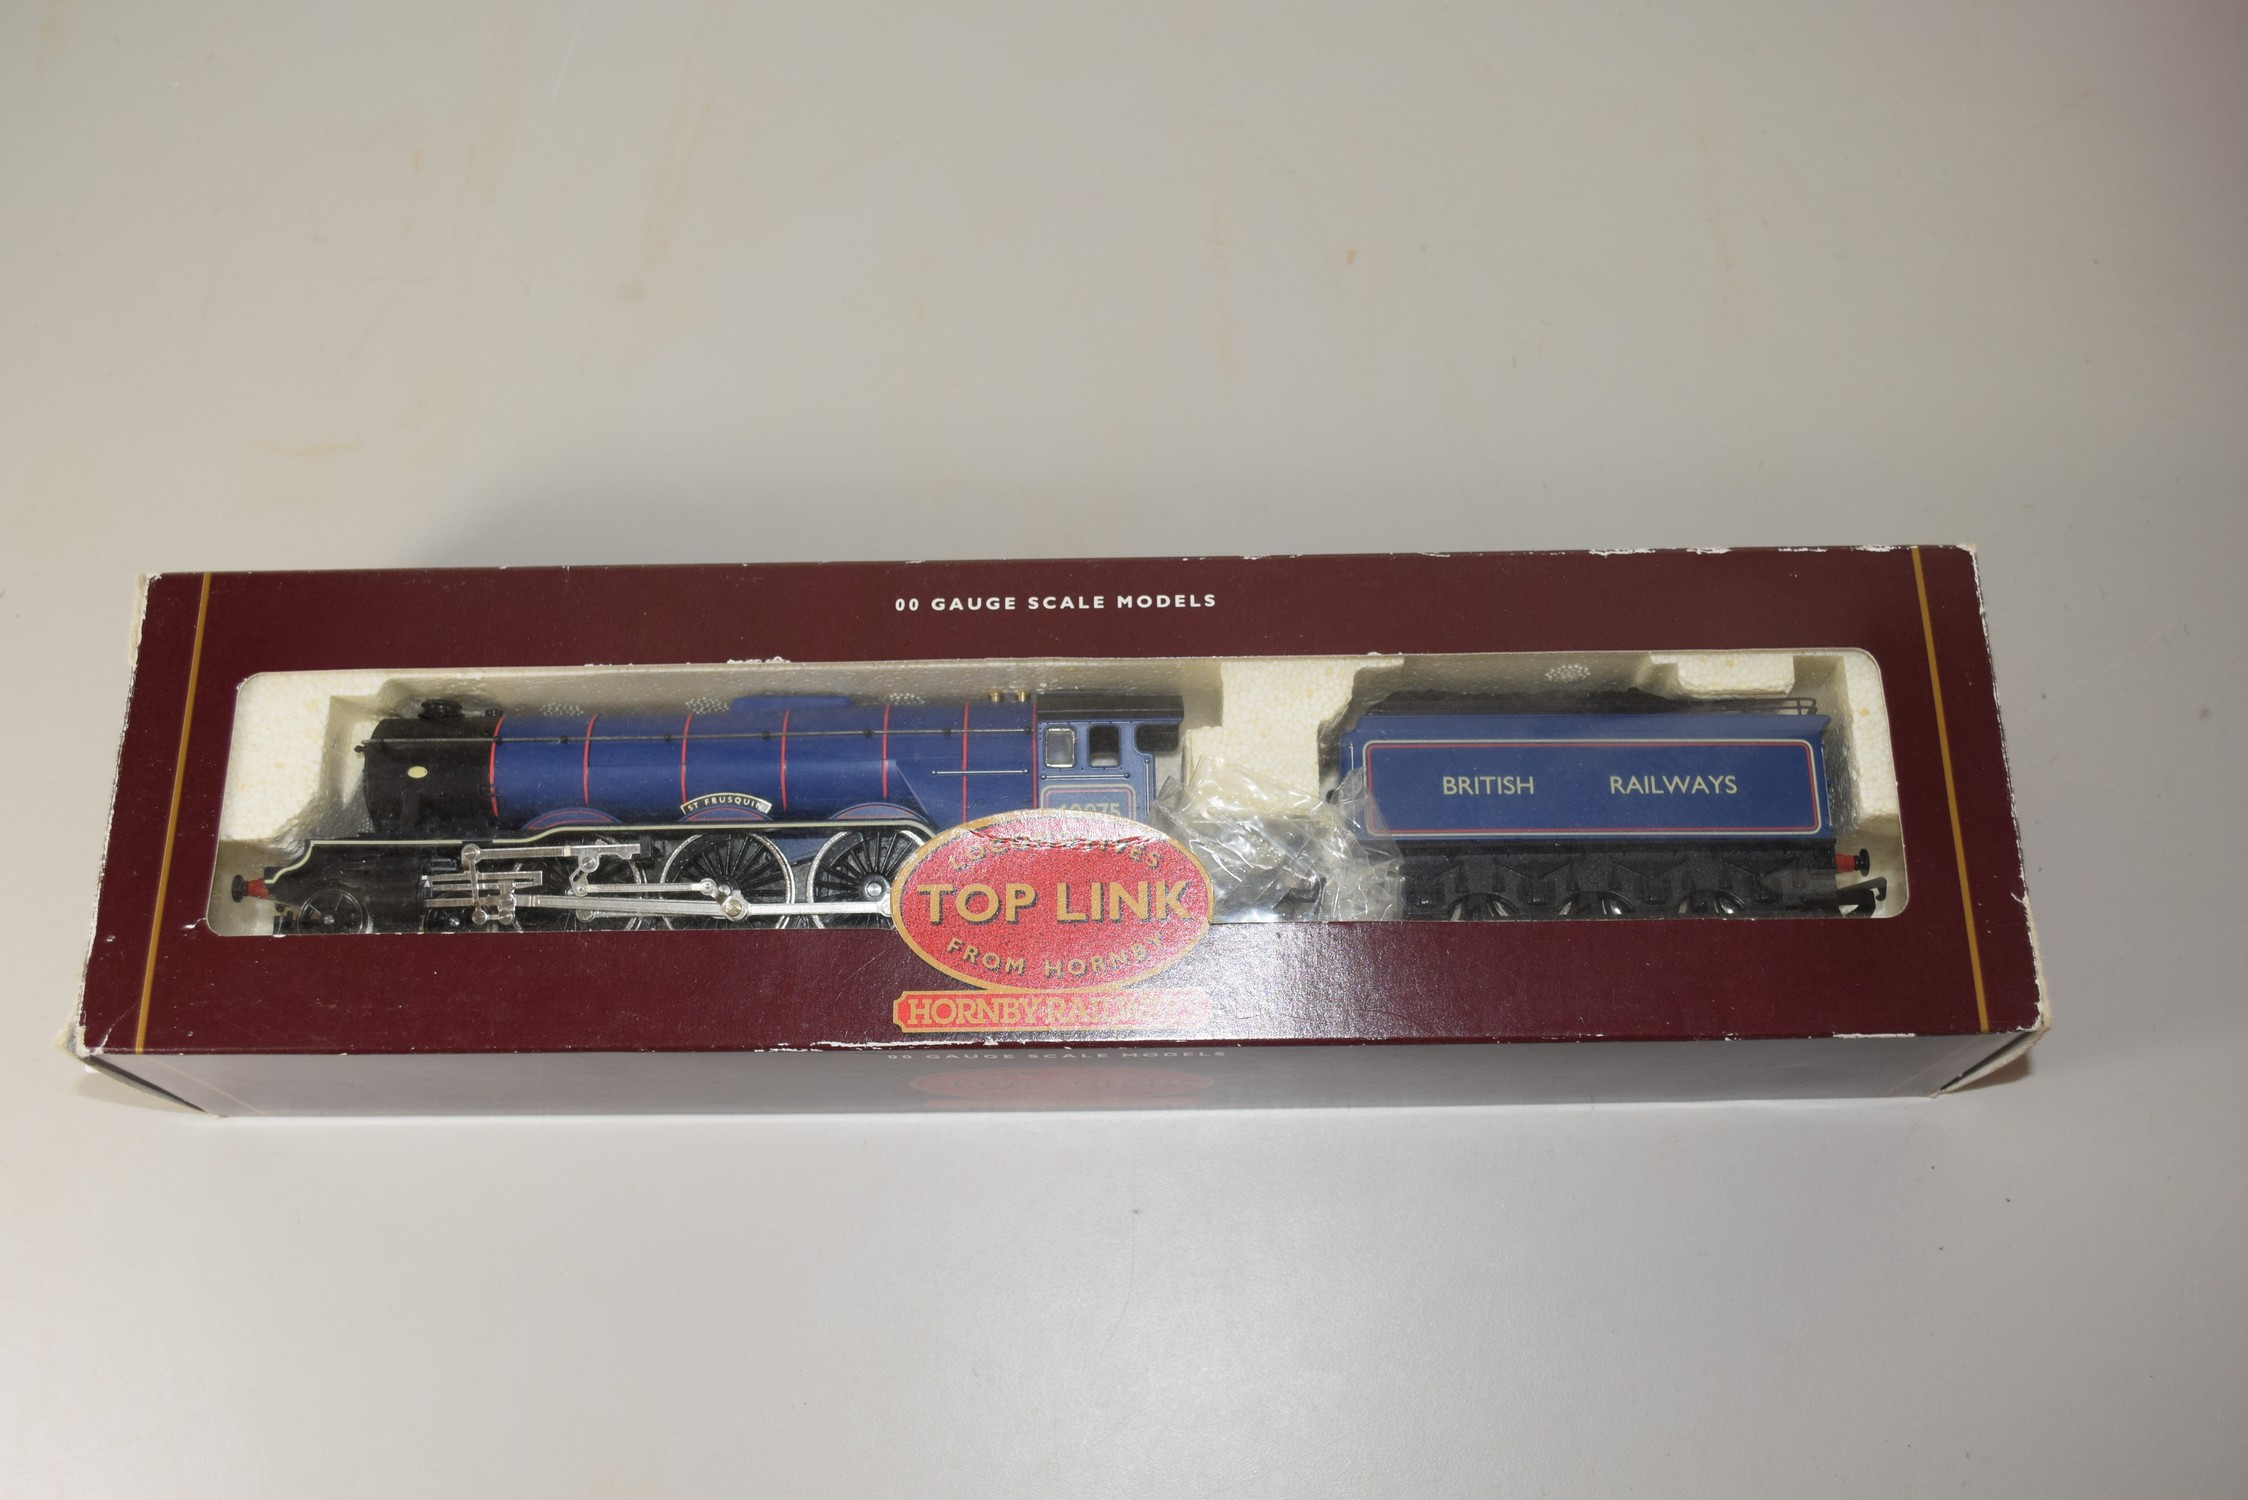 """Boxed Locomotives Top Link from Hornby 00 gauge R2036 BR 4-6-2 Class A3 """"St Frusquin"""" locomotive"""